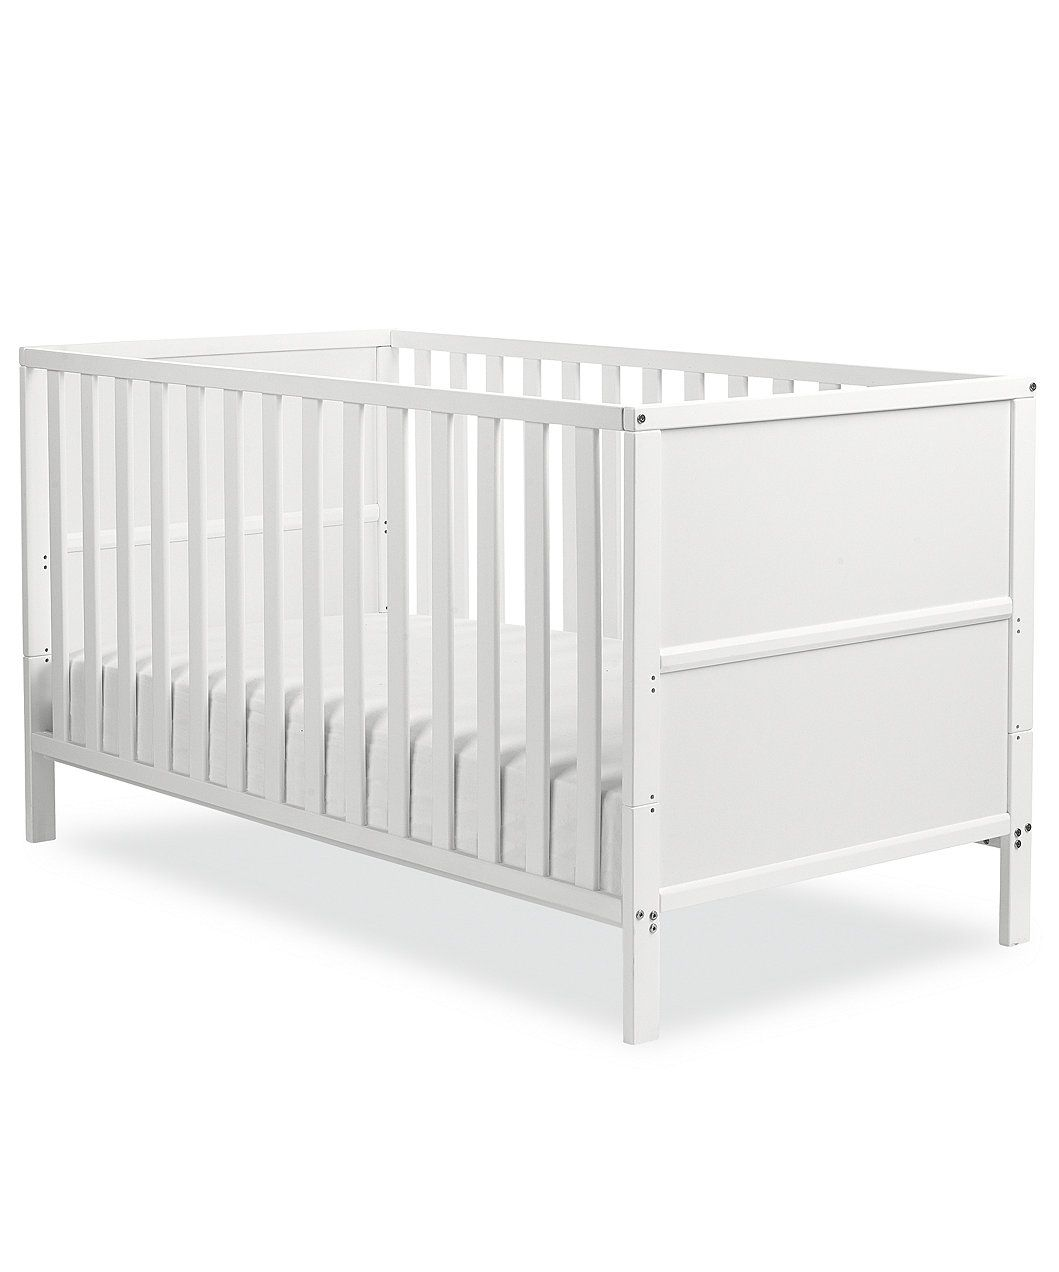 NEW BABY ISABELLA COT BED Grey /& Pocket Sprung Mattress//Quilted Topper.